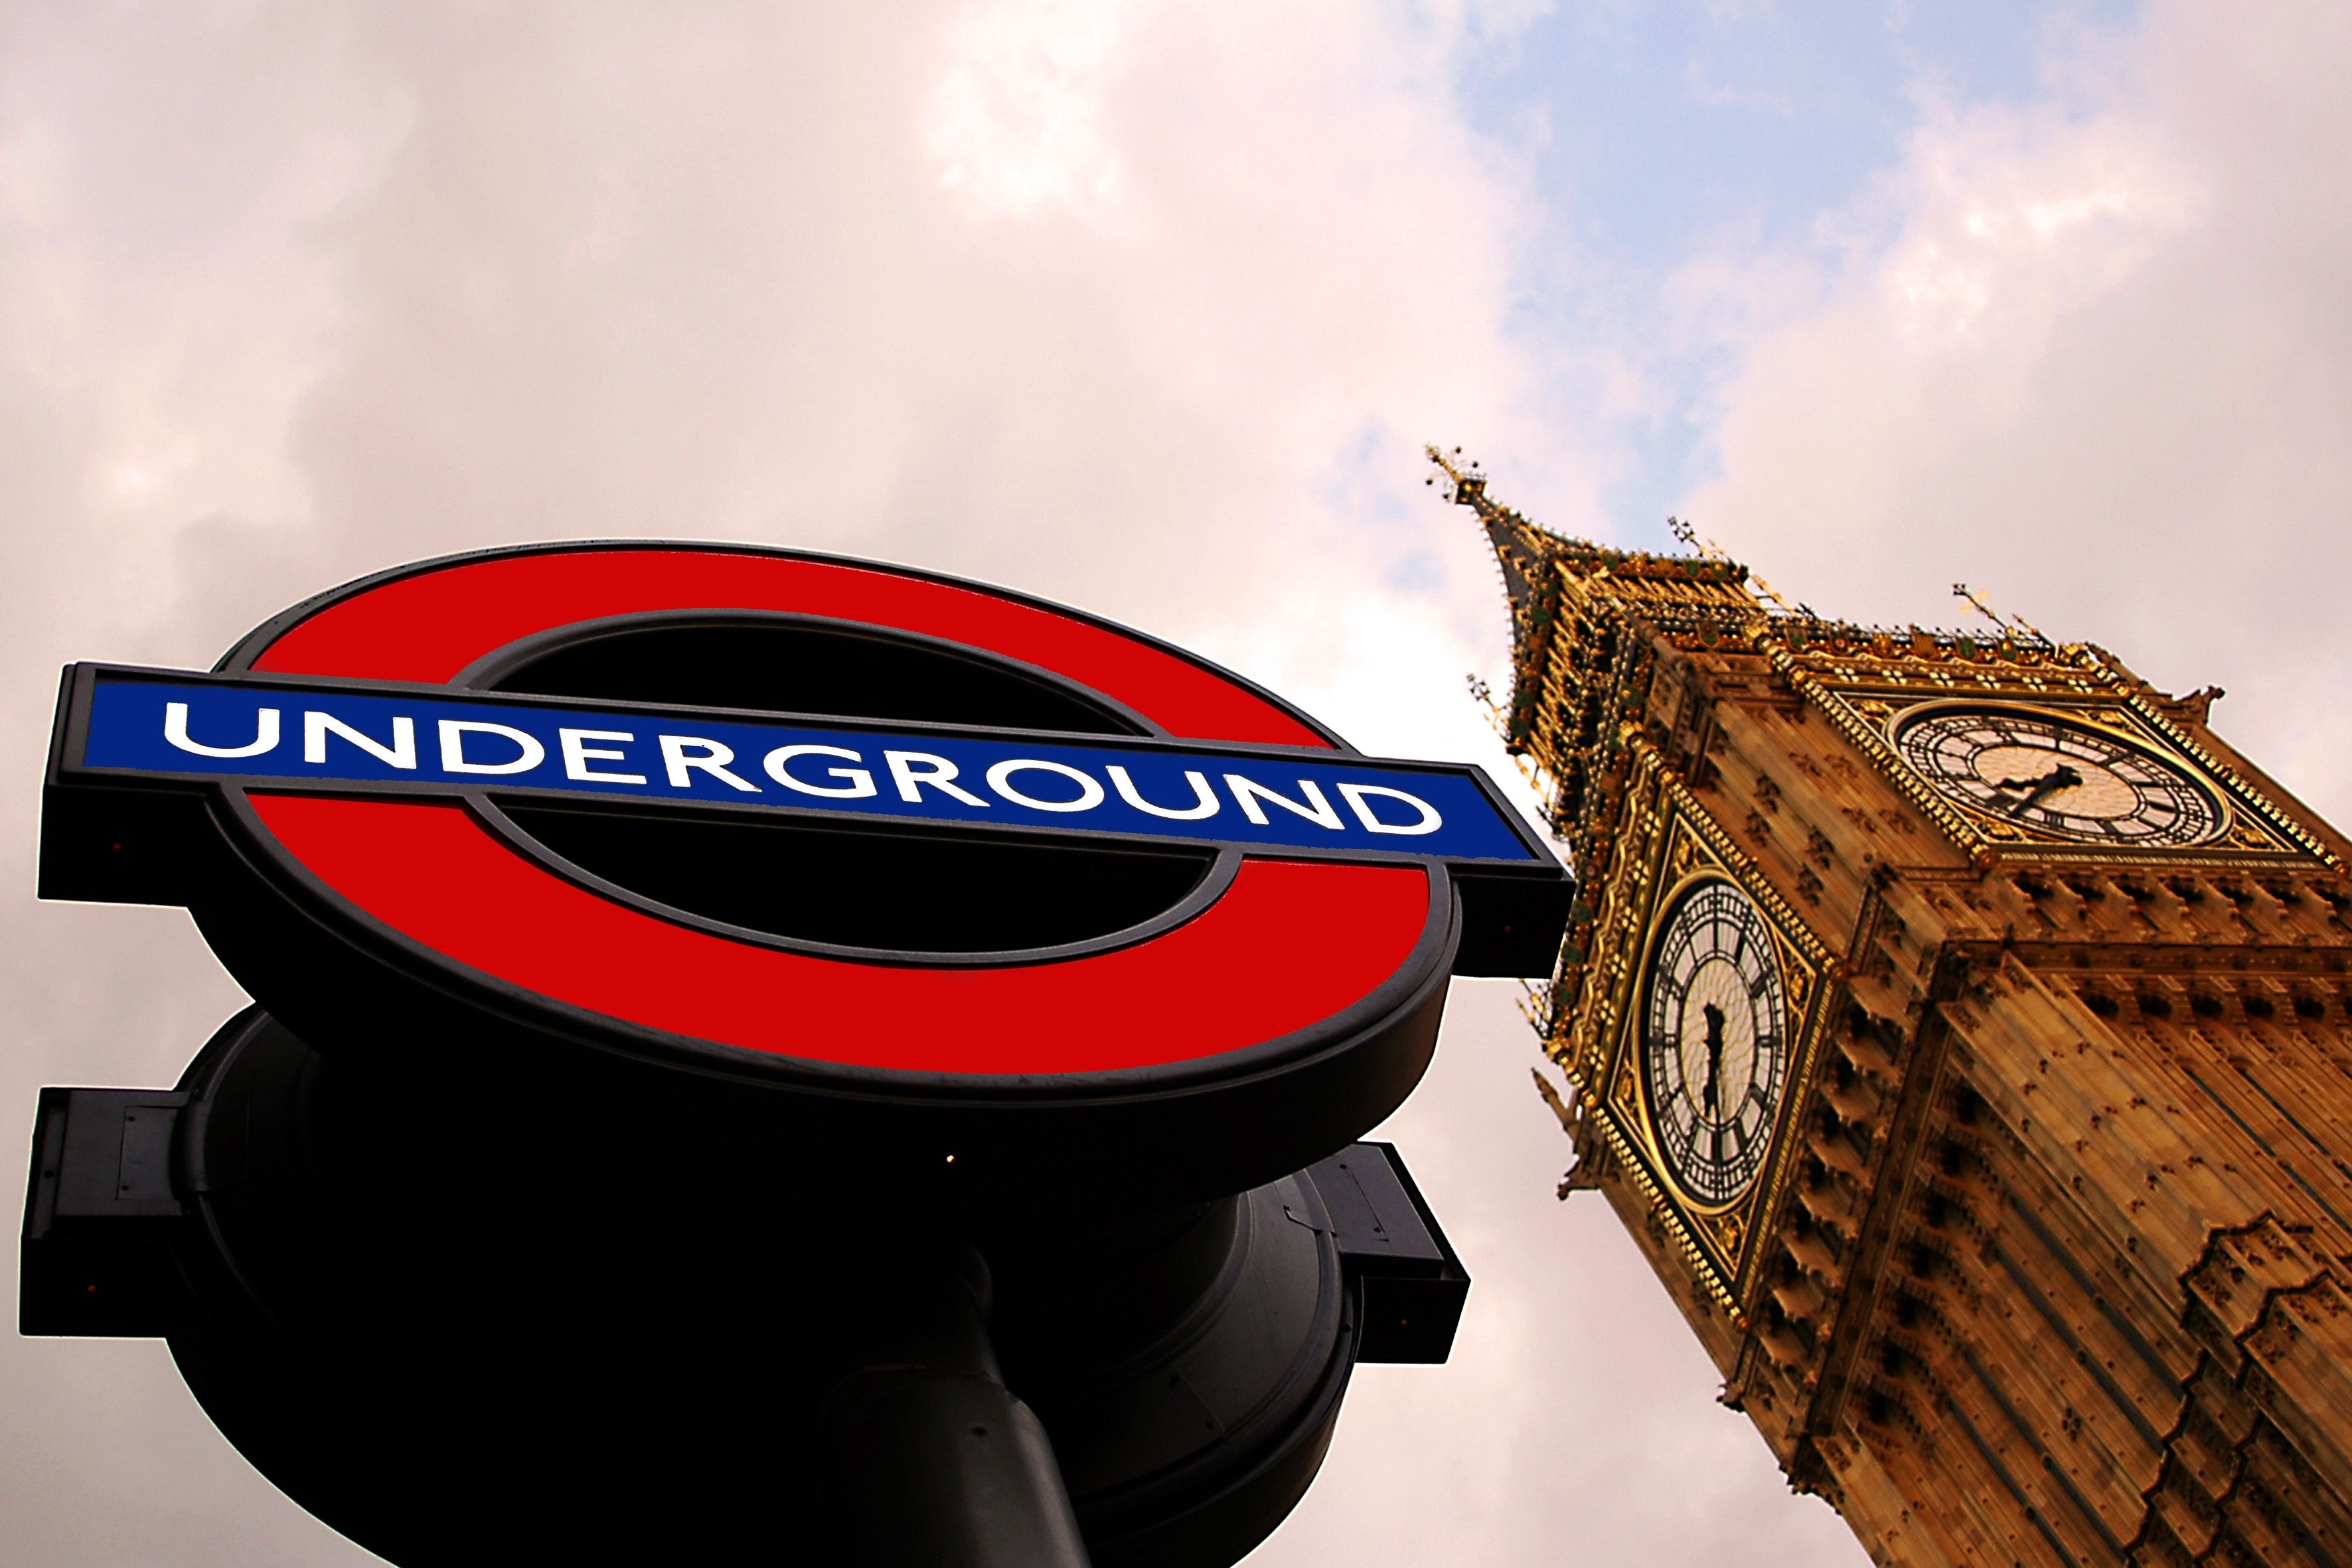 3543x2362 Other: London England Big Ben House Parlament Underground Gb Free ...